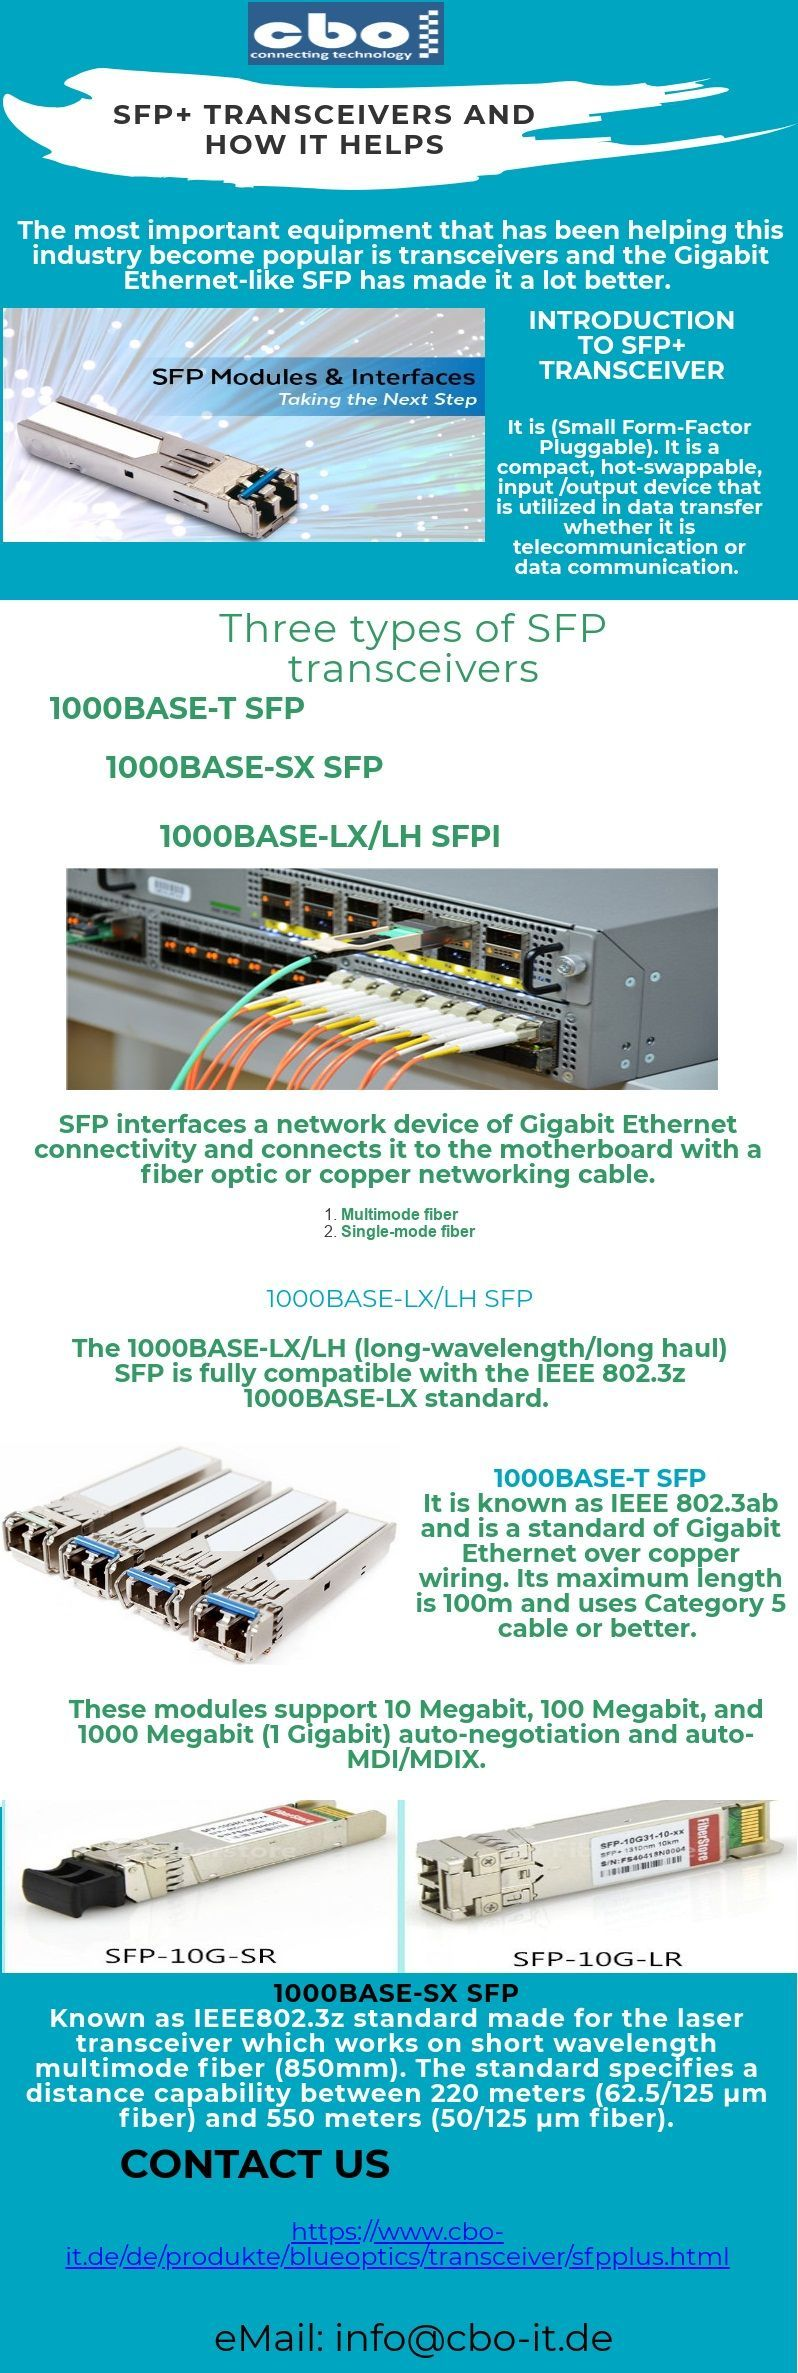 The Most Important Equipment That Has Been Helping This Industry Become Popular Is Transceivers And The Gigabit Cisco Networking Hacking Computer Hacking Books